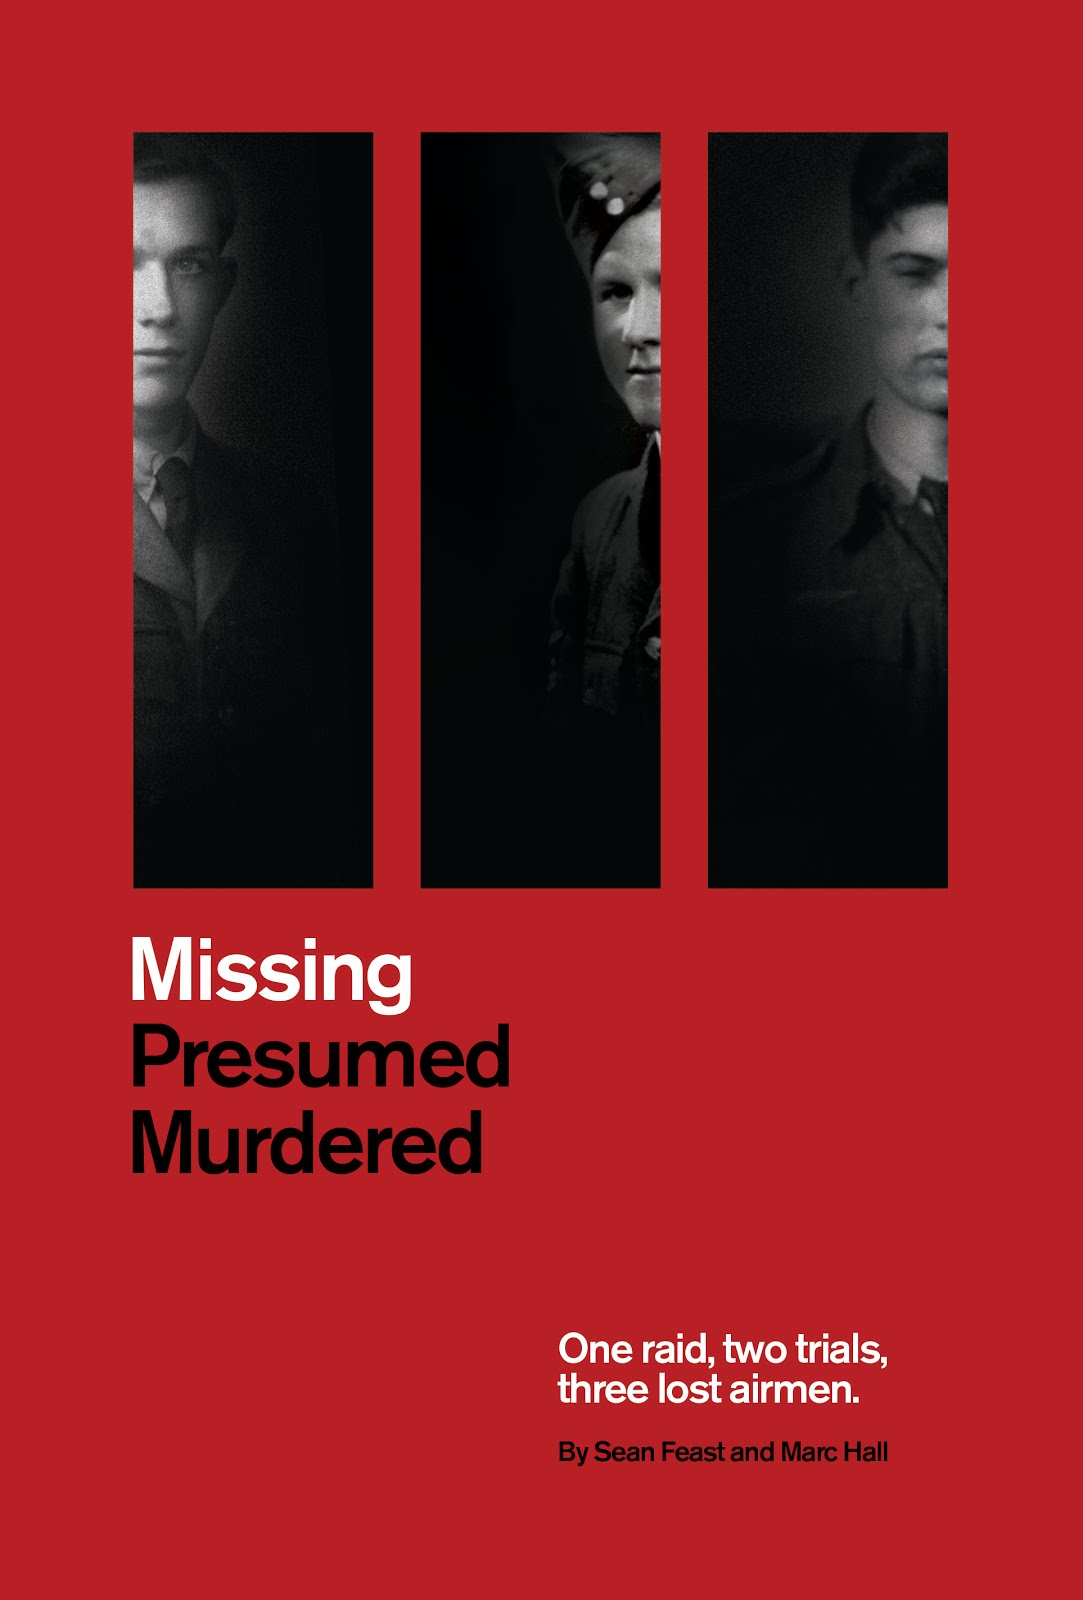 Missing Presumed Murdered